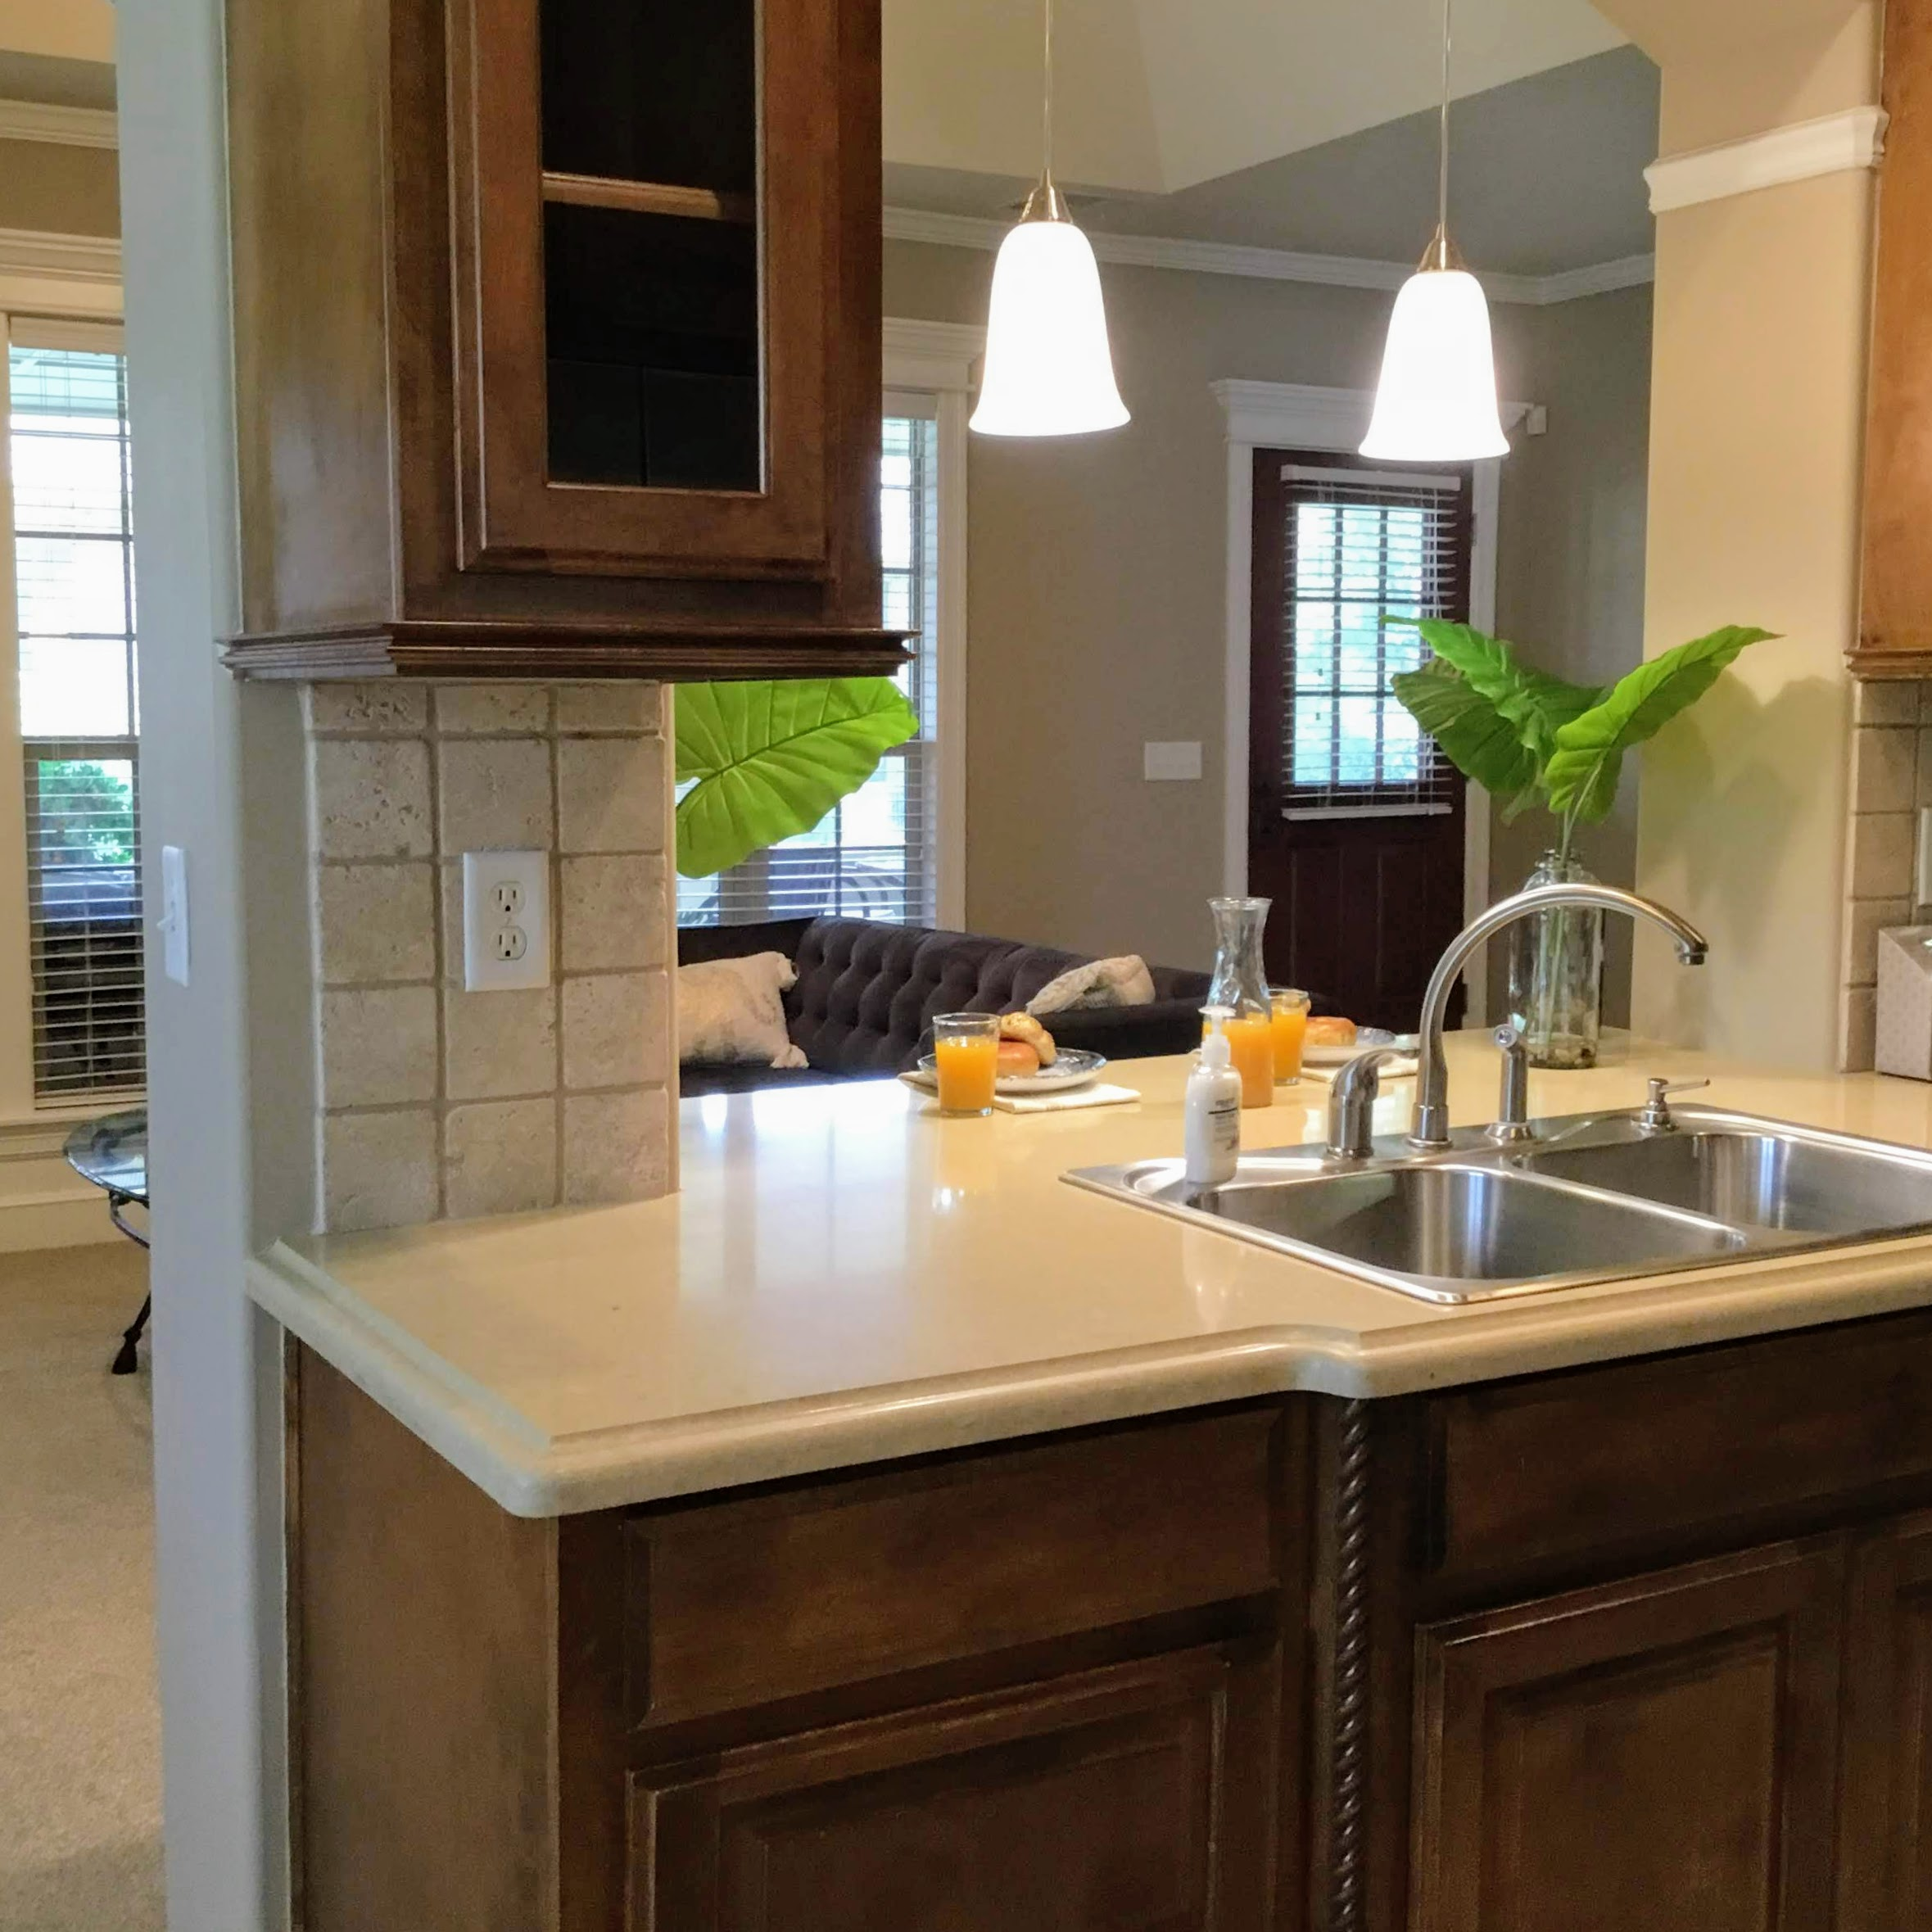 Staging Tulsa - Zarrow Pointe Villas Kitchen Sink 2.JPG